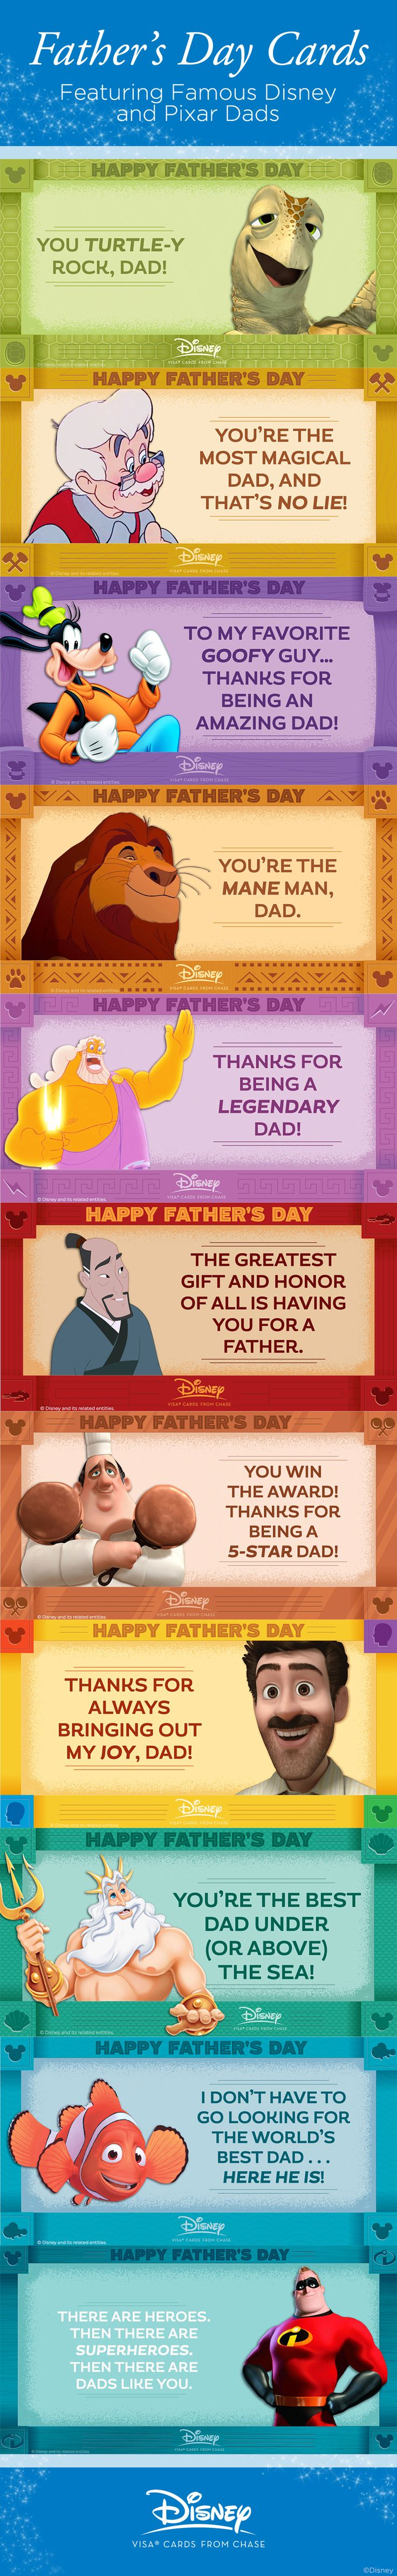 It's a fact: even dads get obsessed with Disney. If you're looking for a special way to wish your dad a Happy Father's Day, choose your favorite Disney Dad Card and surprise your pops with some online appreciation! From Mufasa to Crush, the only dad cooler than these classic characters is yours!